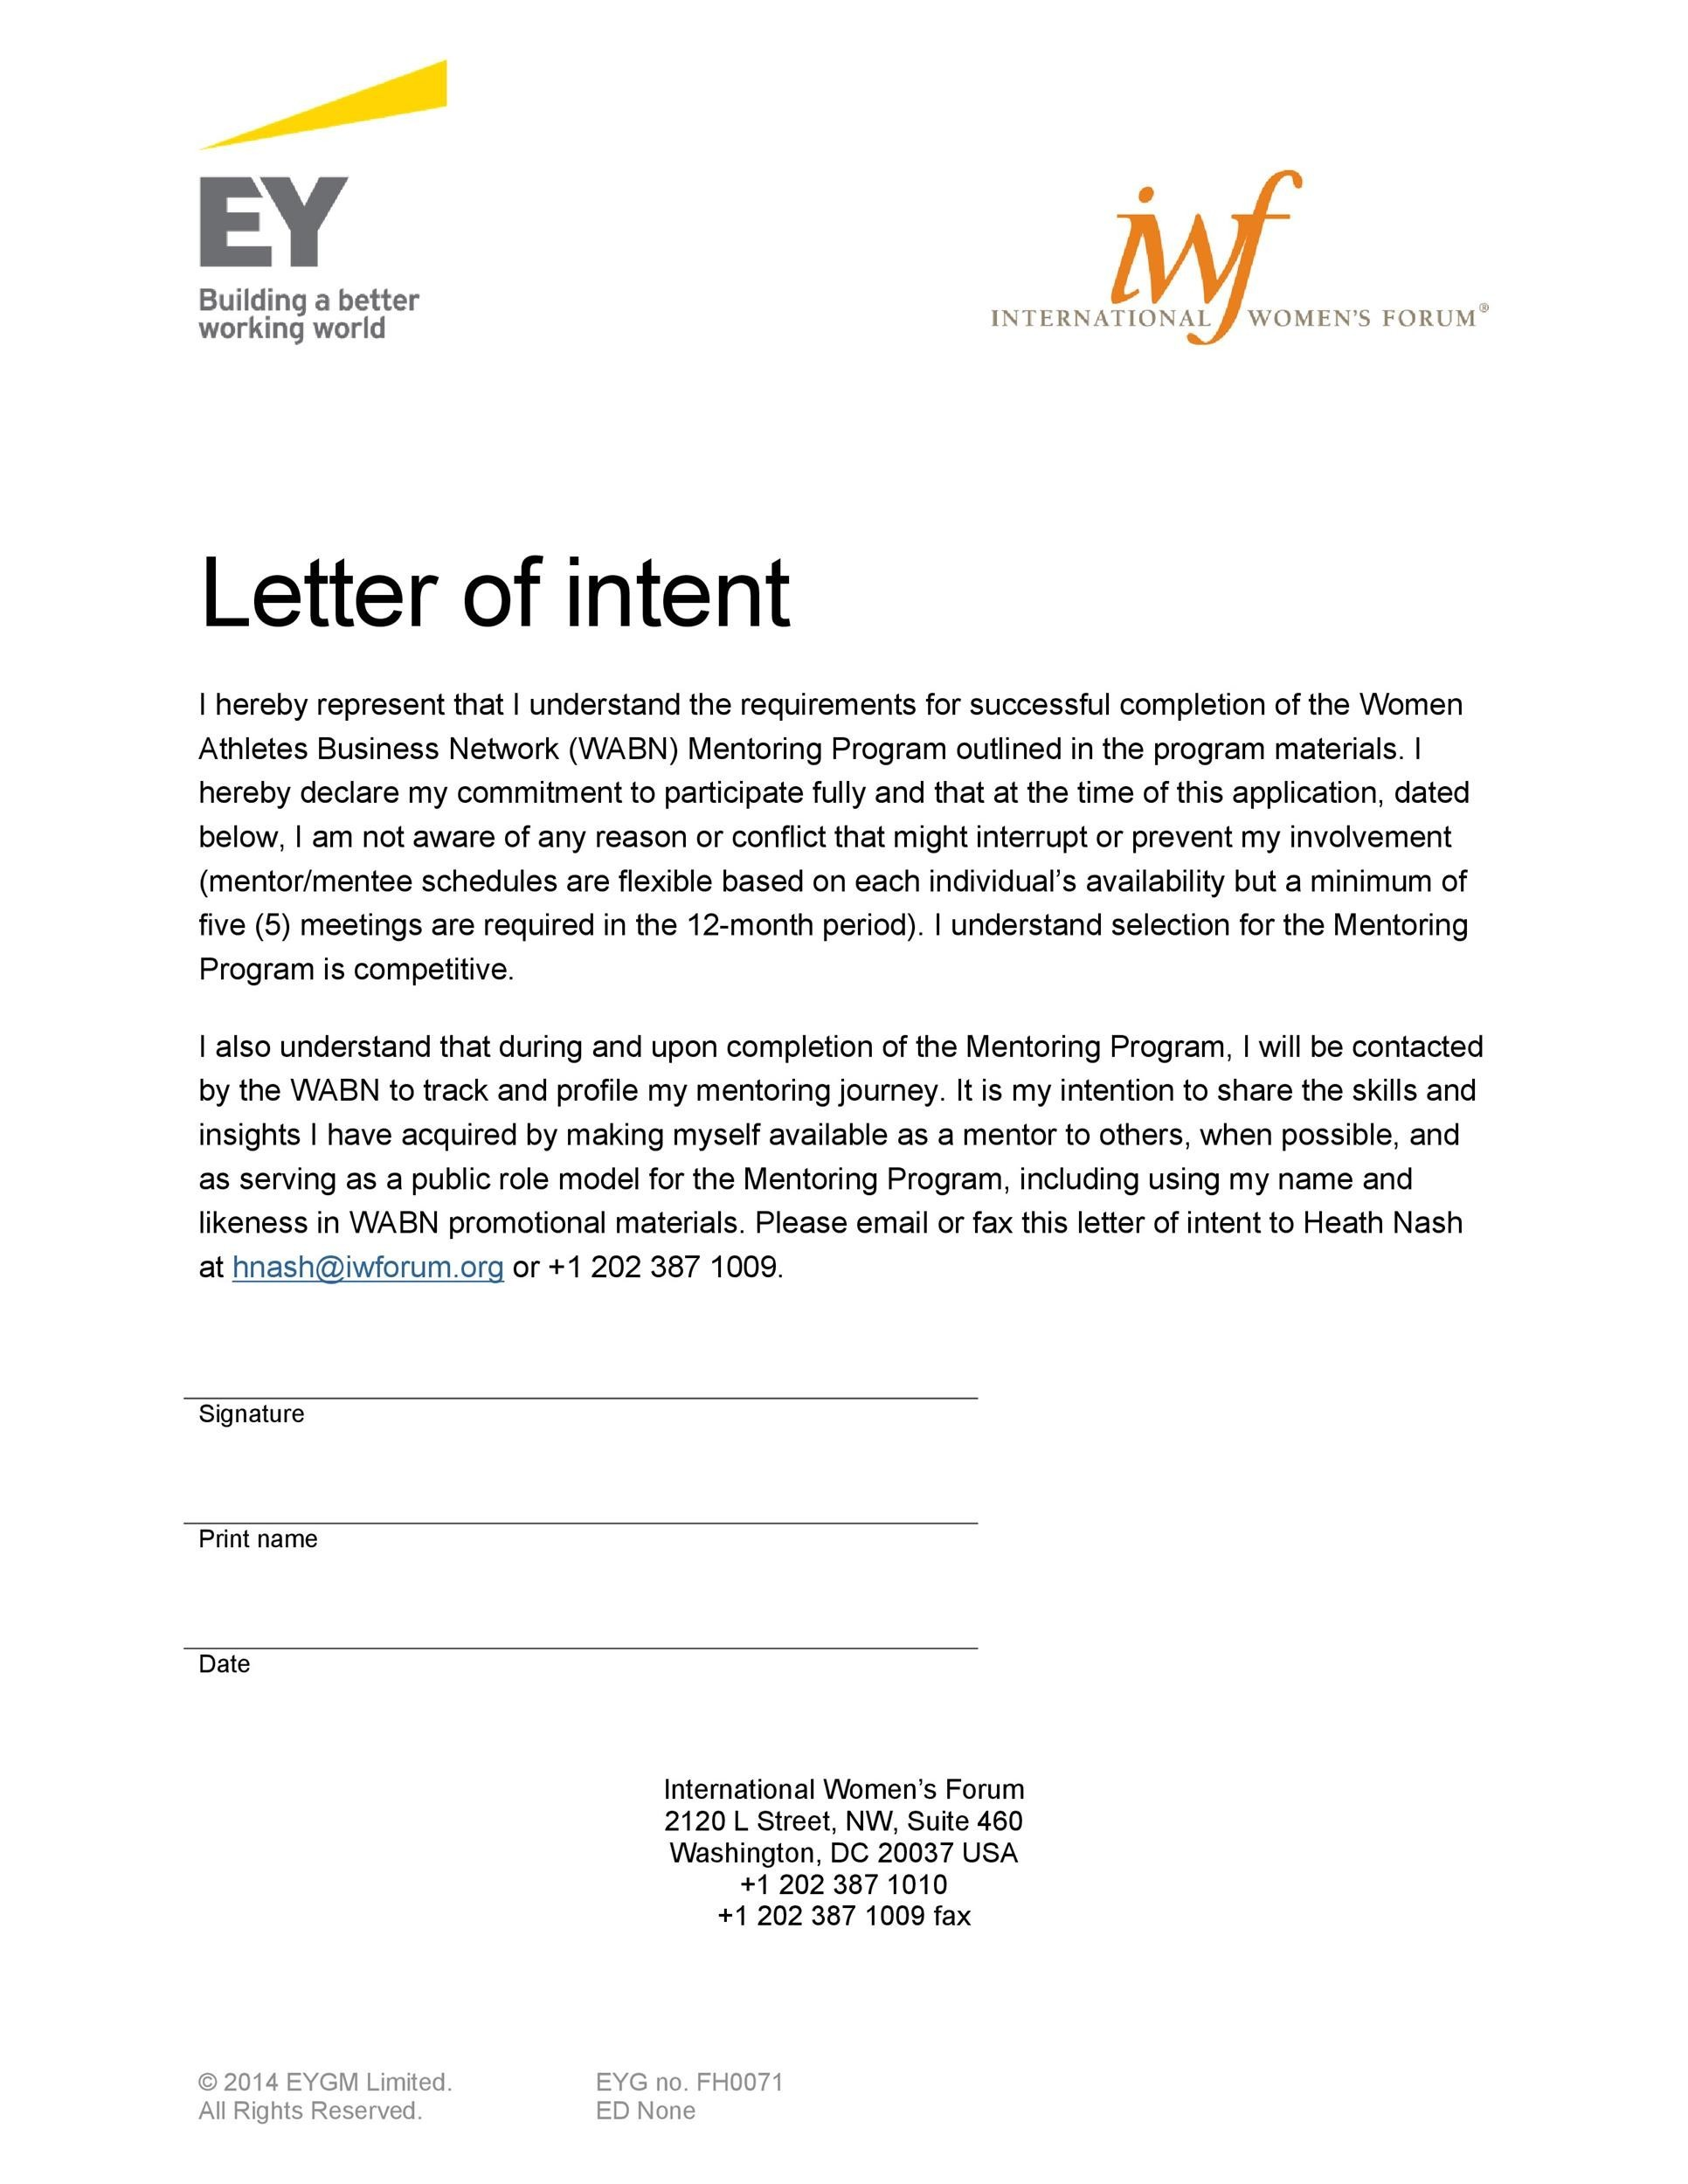 40+ Letter Of Intent Templates & Samples [for Job, School